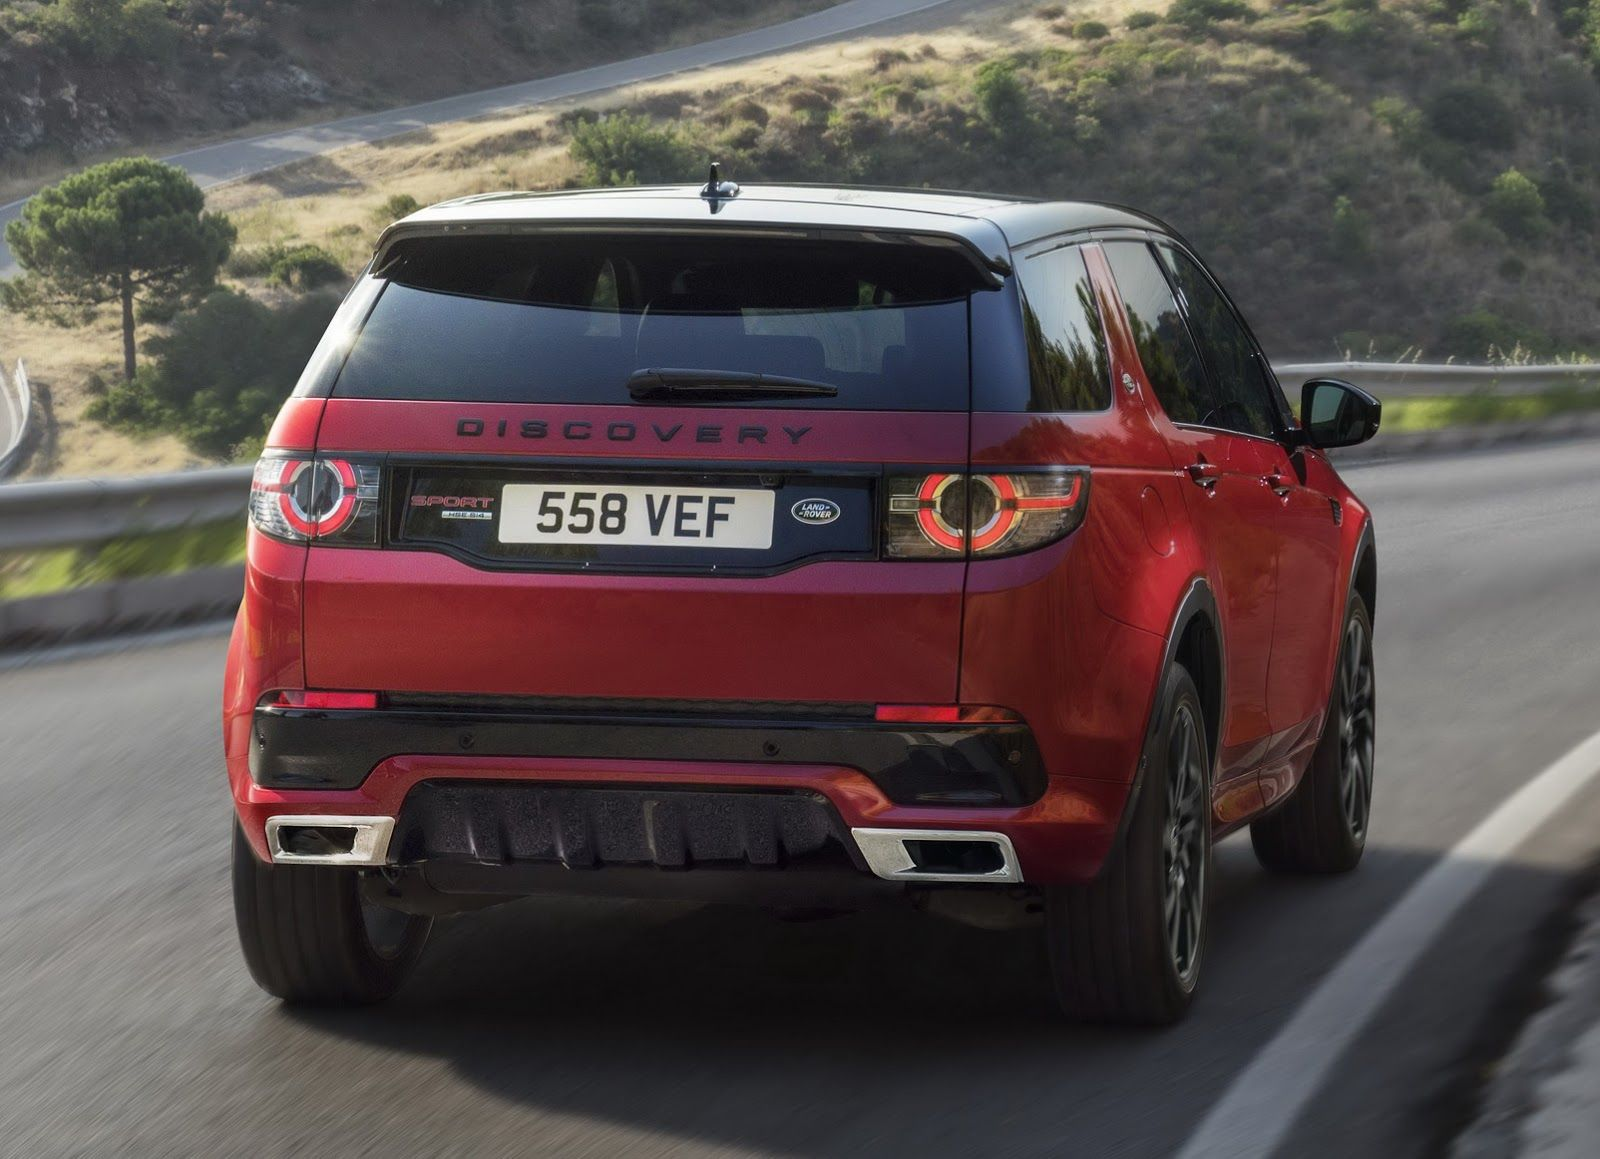 review drive expert diesel discovery landrover of rover engine land test